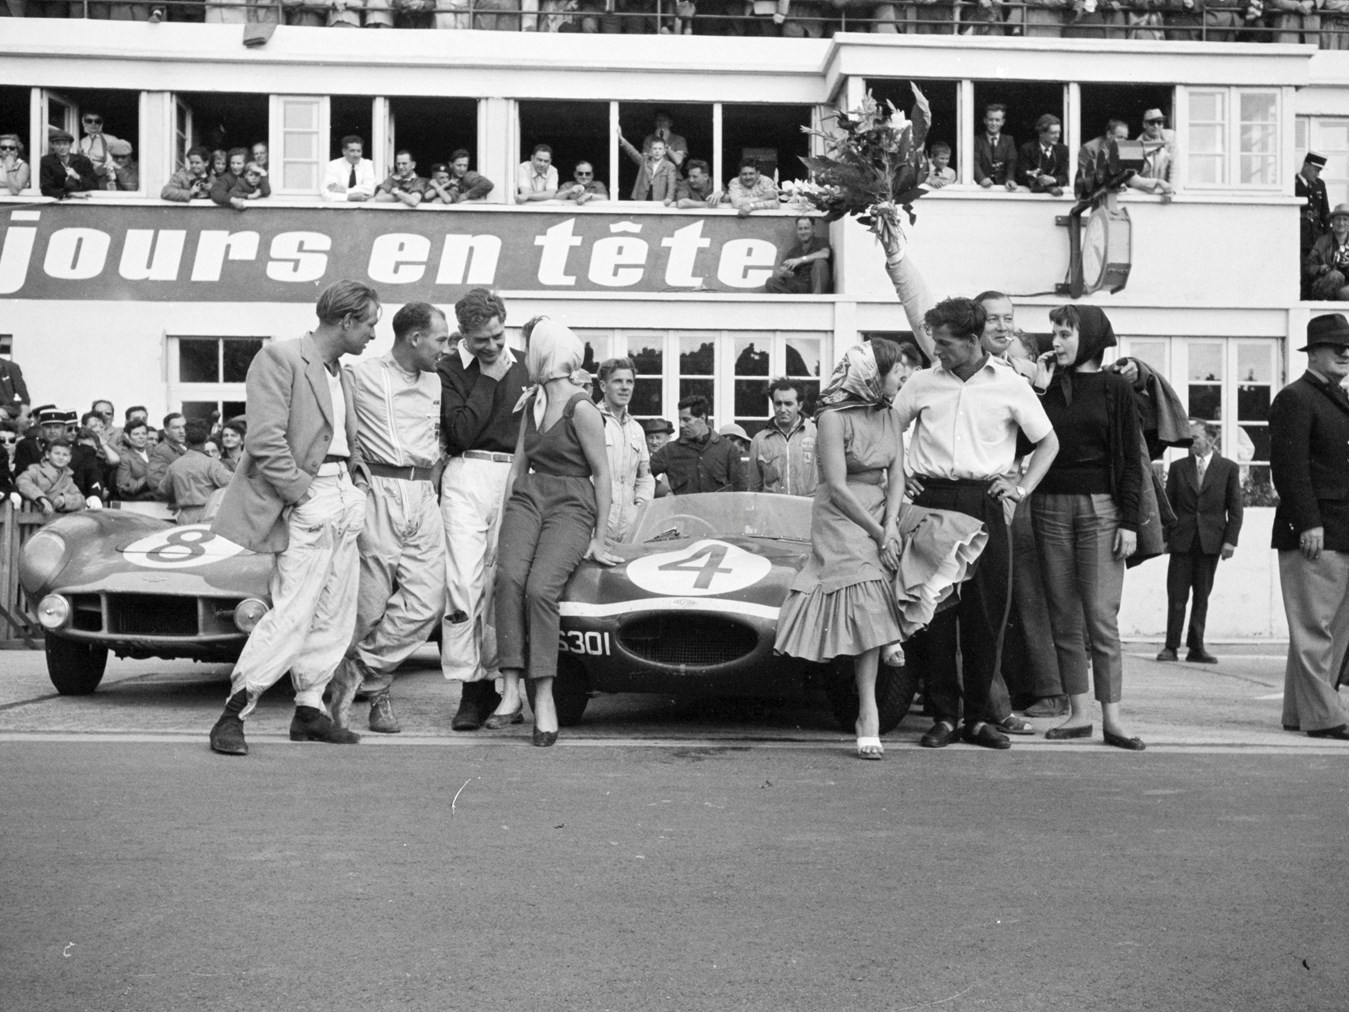 Chassis no. XKD 501 pictured at the finish of the 1956 24 Hours of Le Mans along with the 2nd place Aston Martin DB3S of Sir Stirling Moss and Peter Collins.